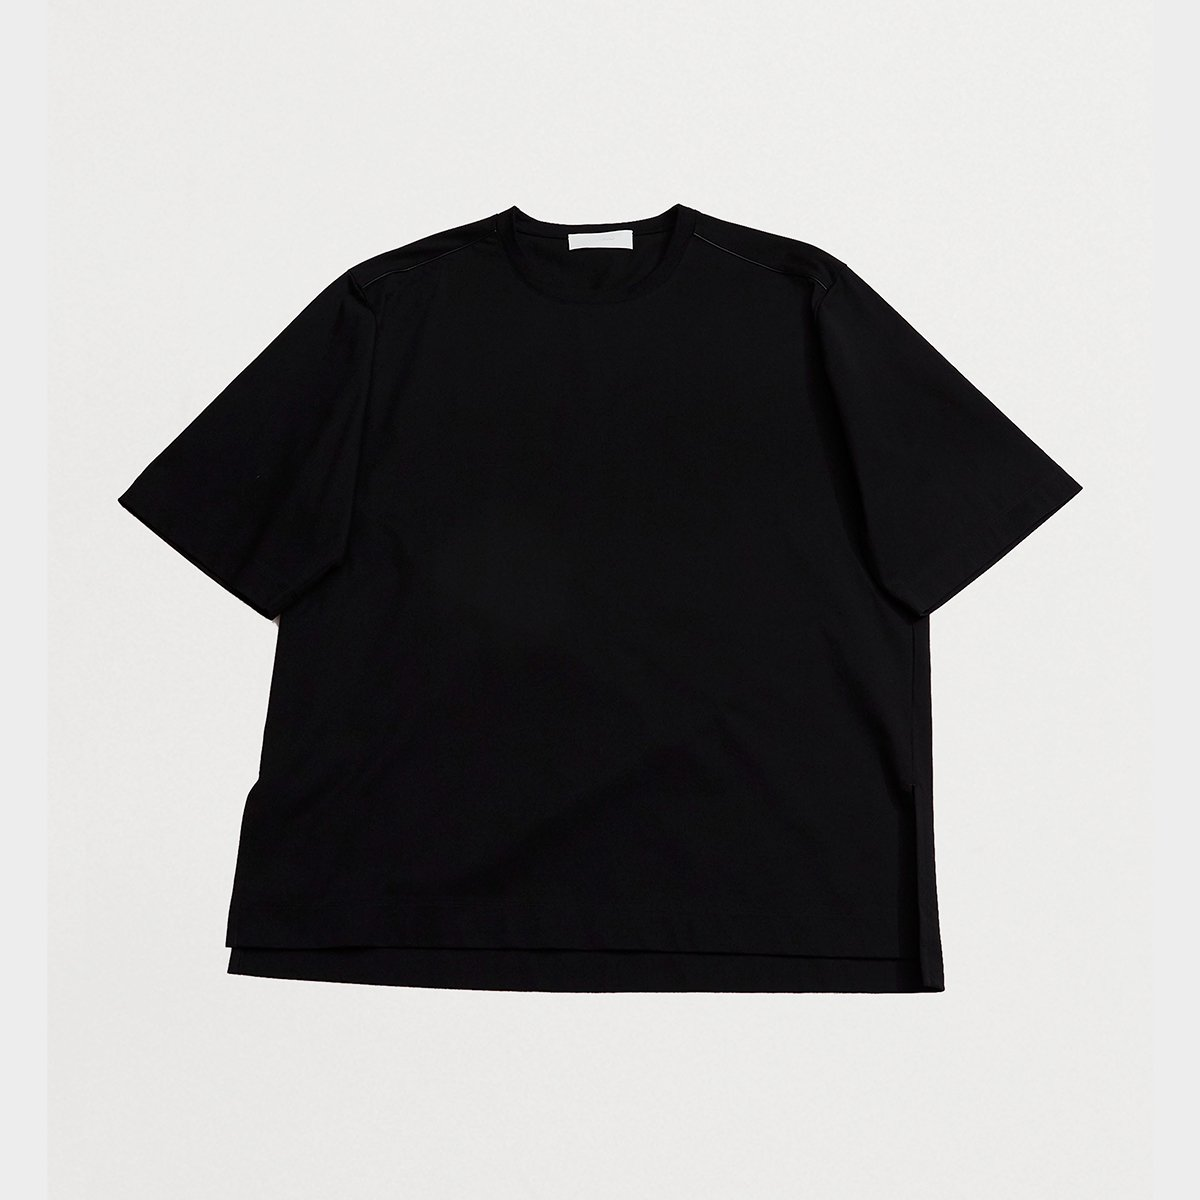 <img class='new_mark_img1' src='https://img.shop-pro.jp/img/new/icons5.gif' style='border:none;display:inline;margin:0px;padding:0px;width:auto;' />SHORT-SLEEVED T-SHIRTS / BLACK